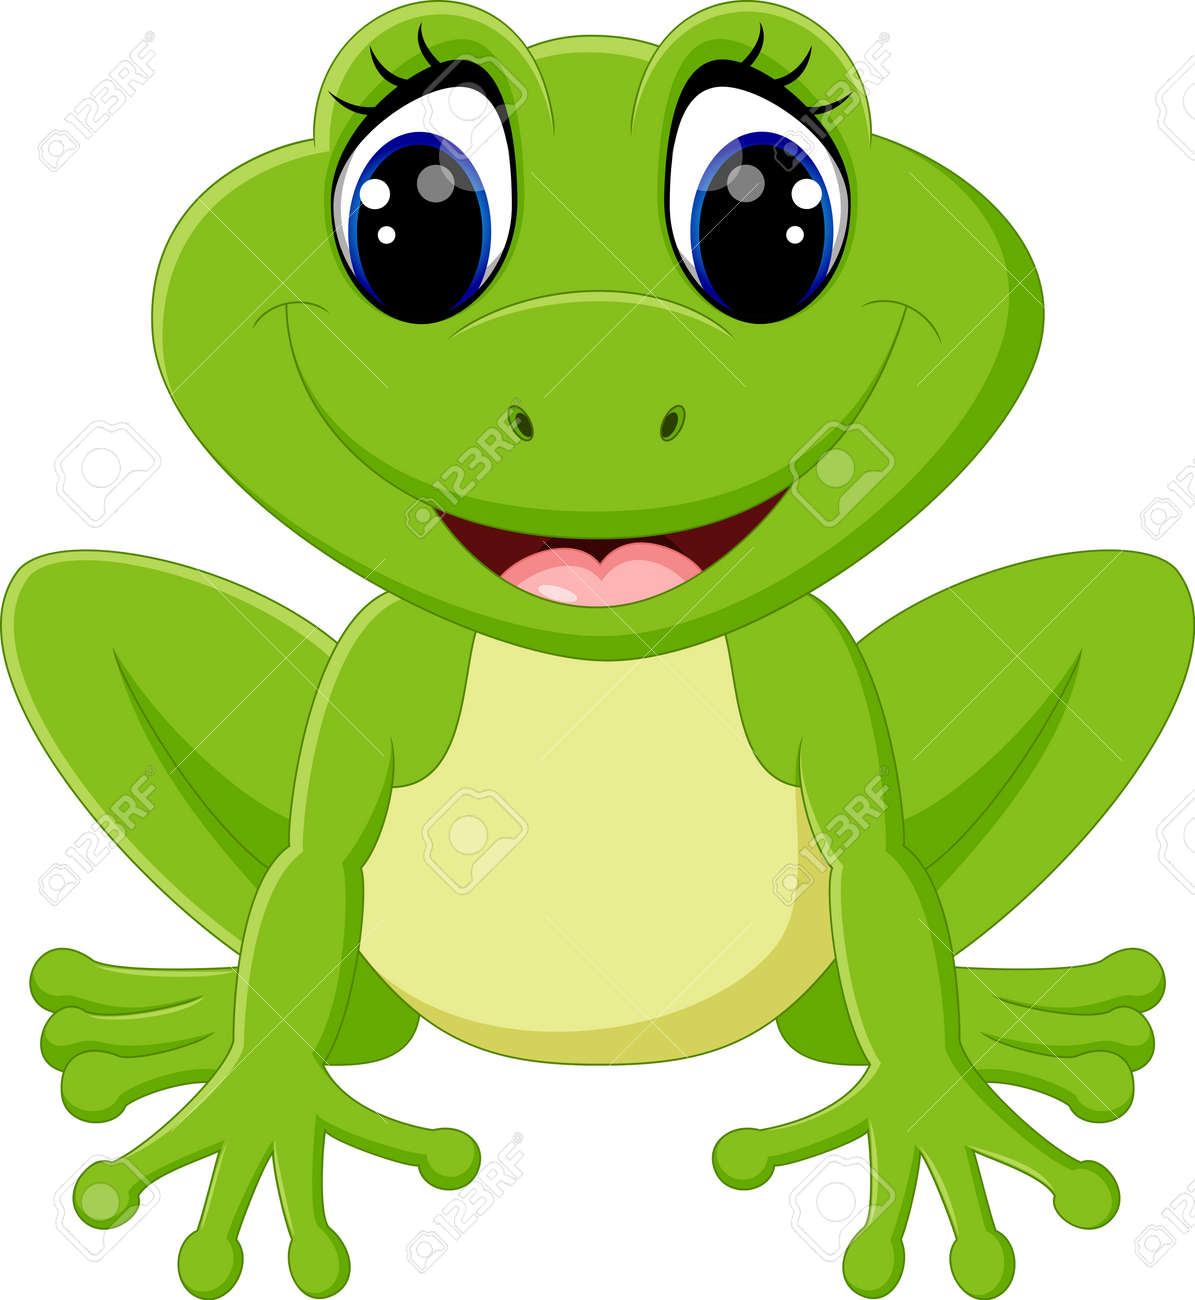 8 333 cute frog cliparts stock vector and royalty free cute frog rh 123rf com Frog Prince Clip Art Cartoon Frog Clip Art